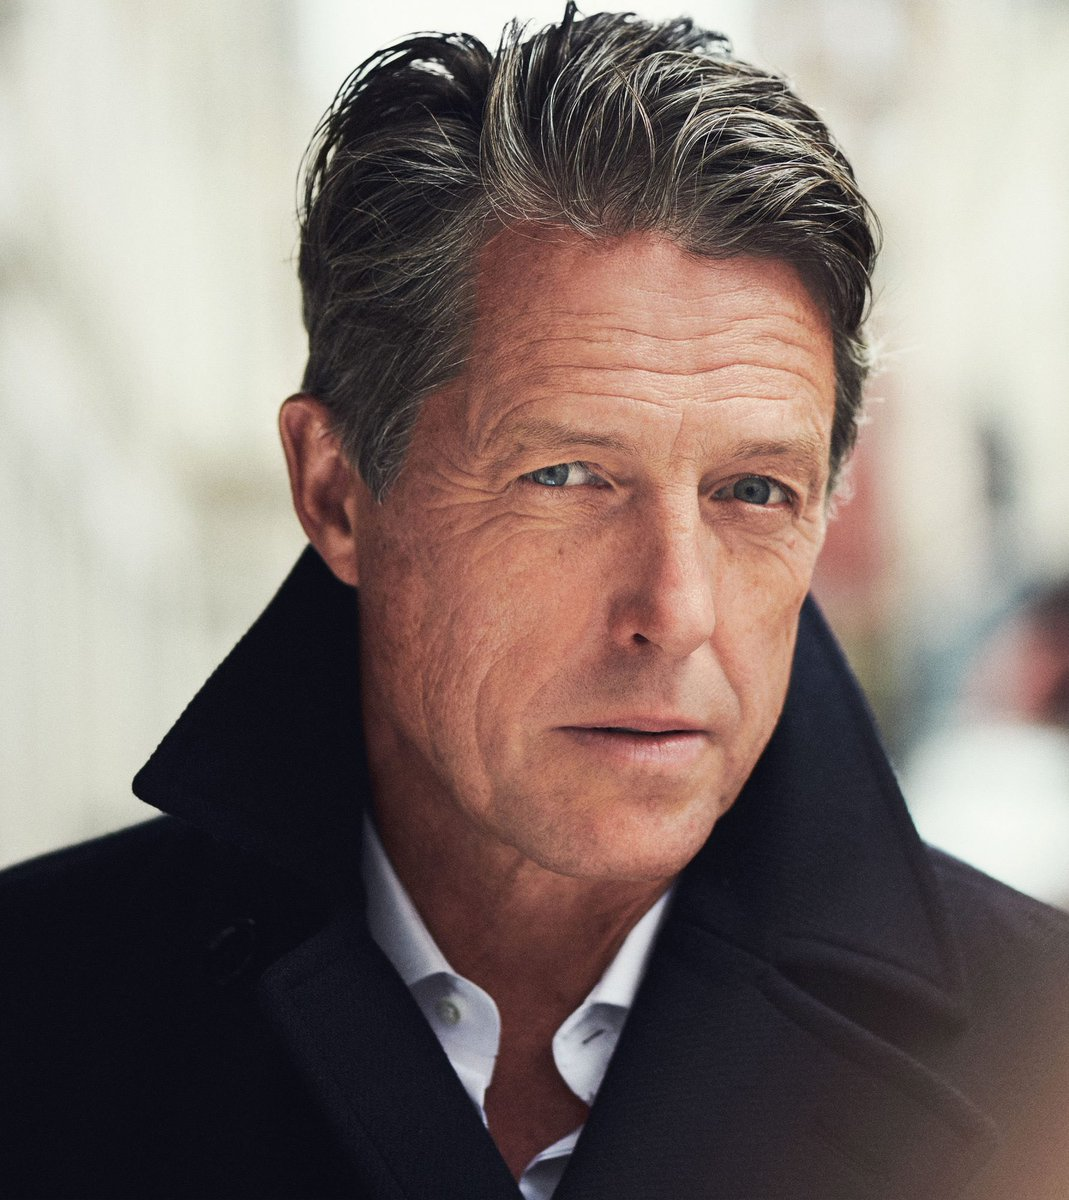 #hughgrant has been cast as the baddie in upcoming #dungeonsanddragons film  #Games #twitter #instagram #instagood #movies #film #photooftheday #actor #entertainment #gaming #gamers #love #influencer #netflix #retweet #f4f #followforfollowback #like #l4l #hollywood